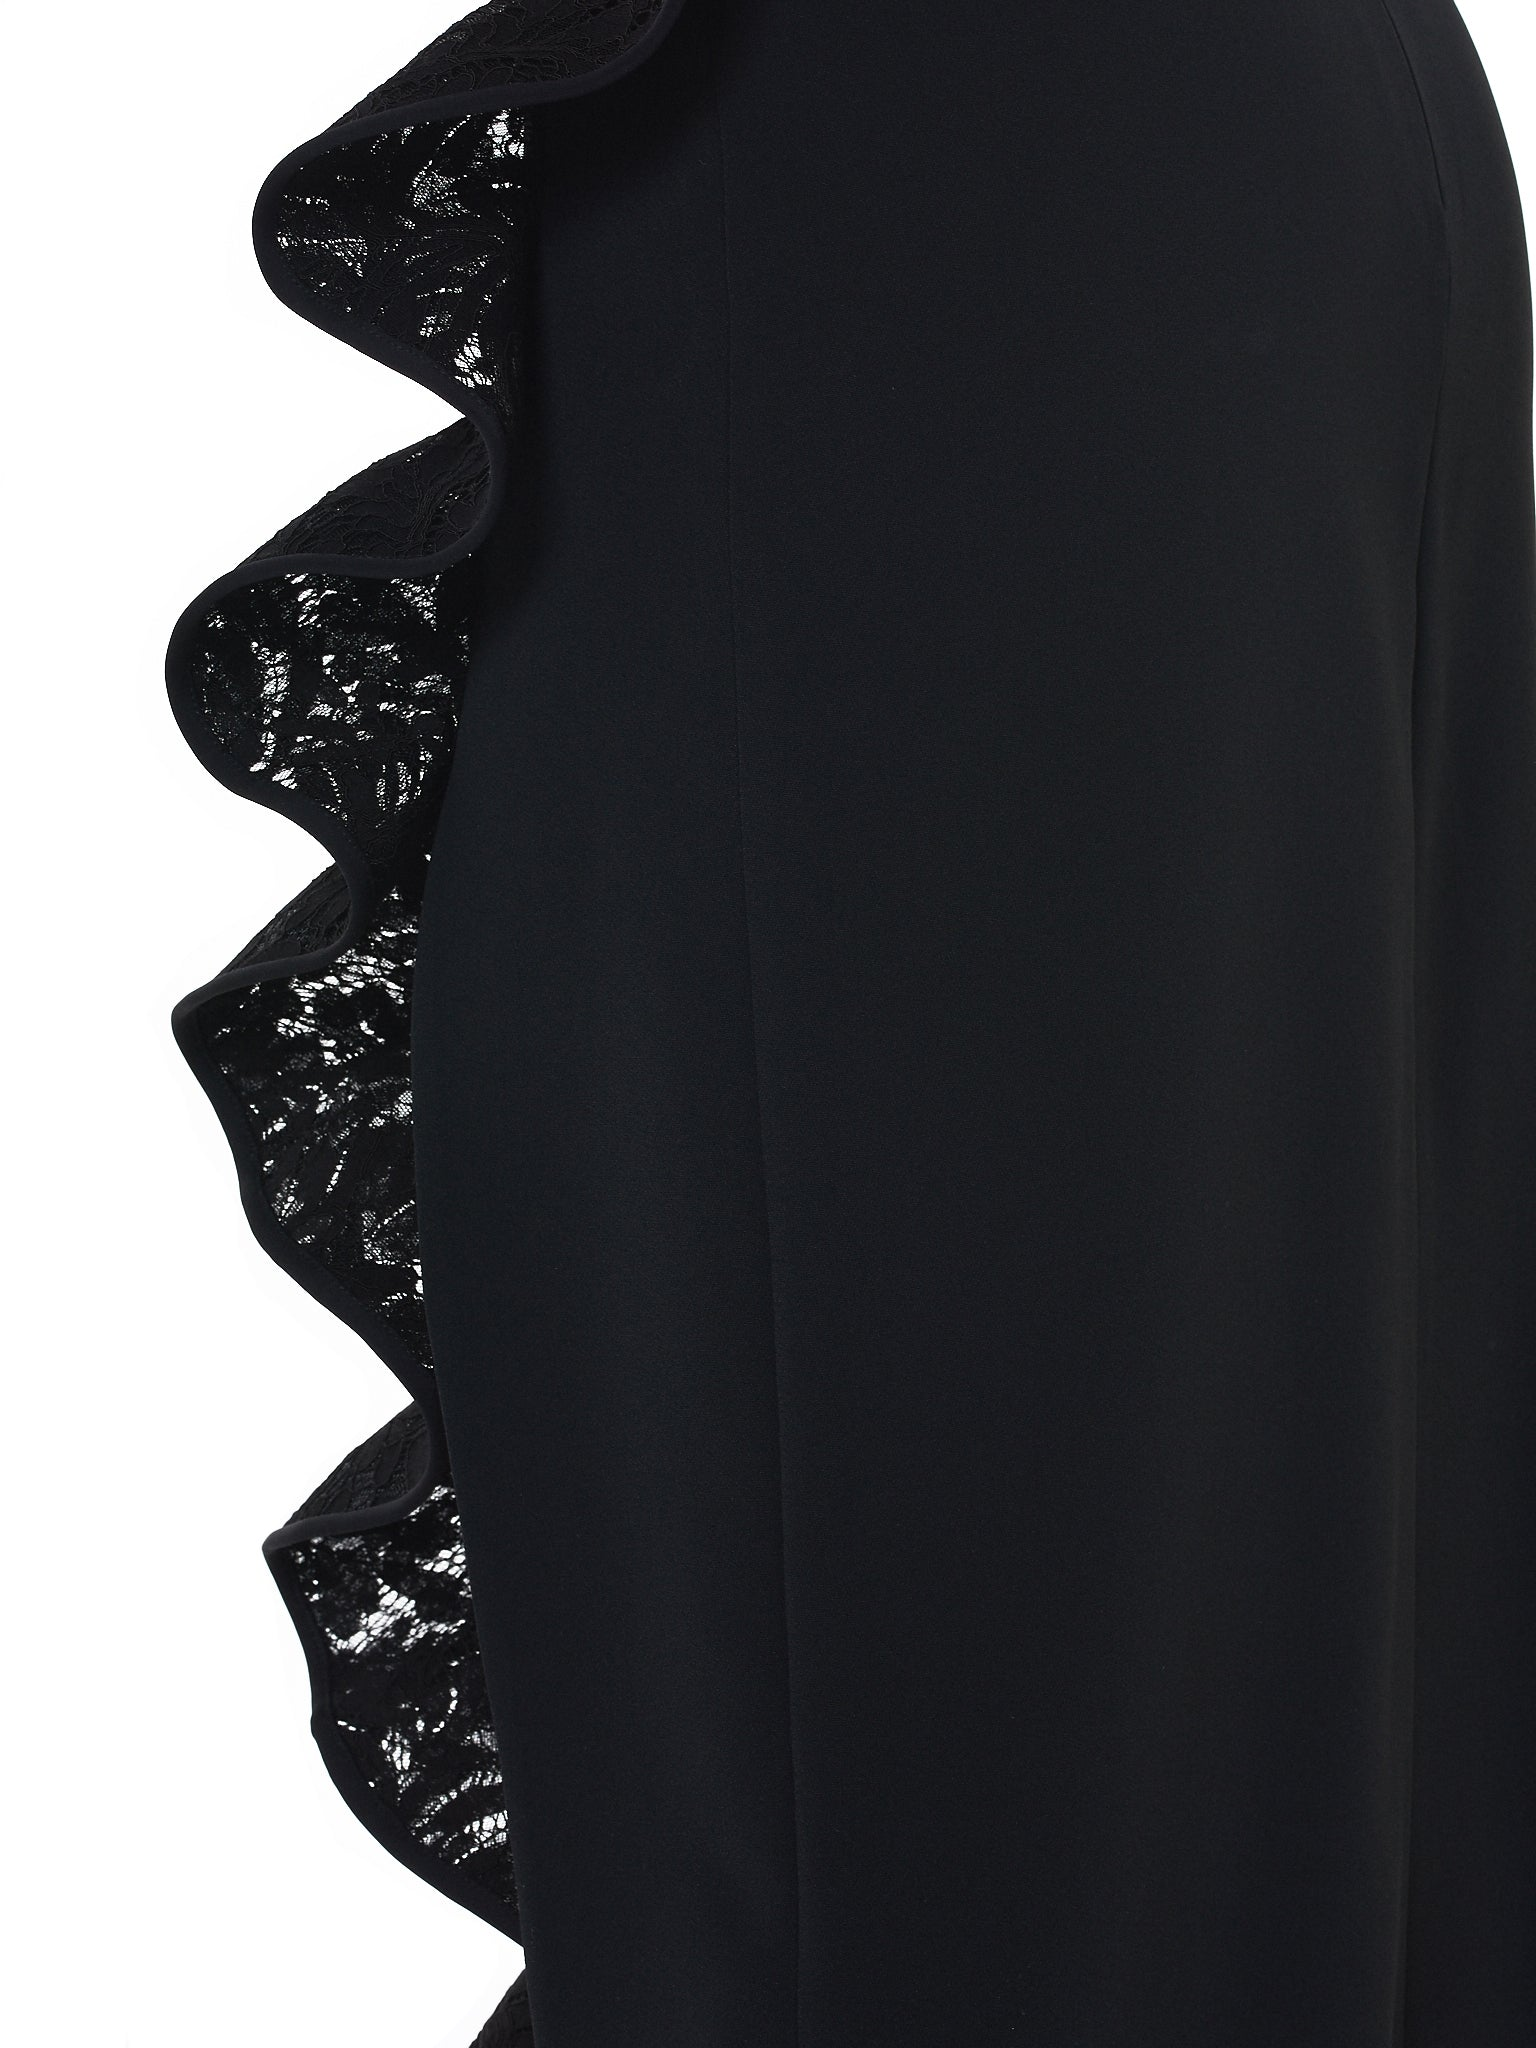 David Koma Dress - Hlorenzo Detail 2